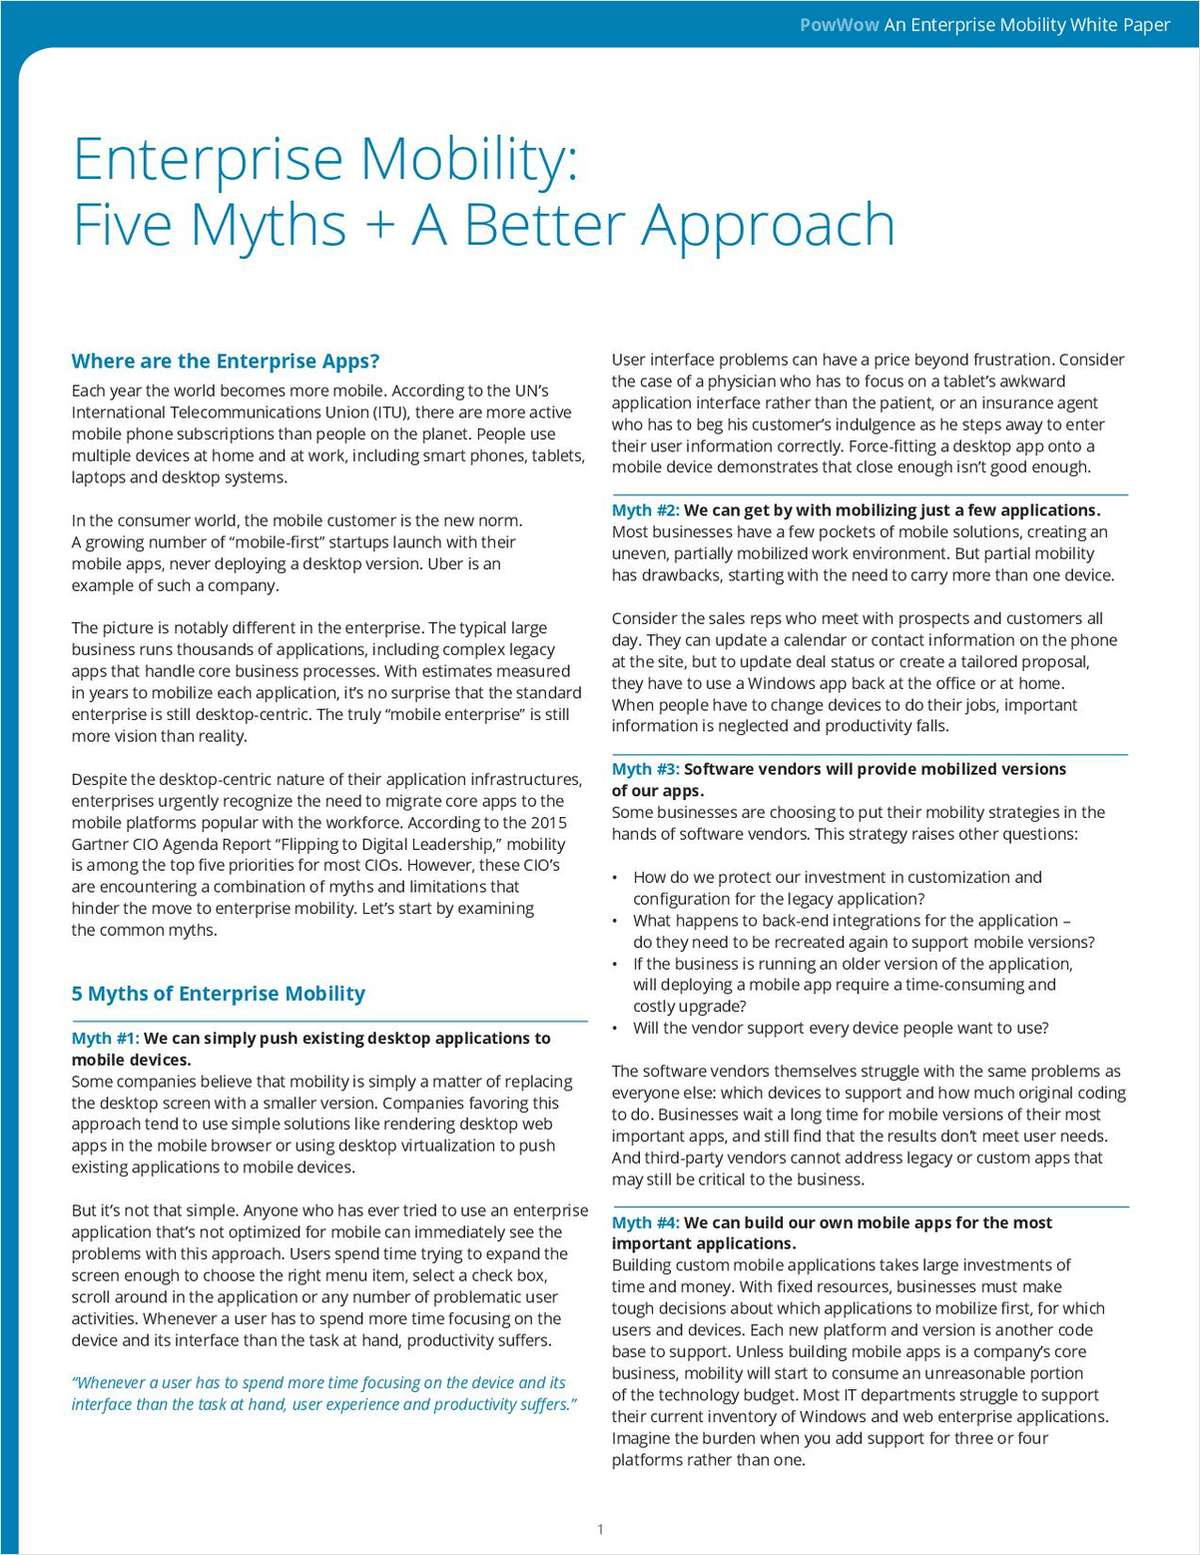 New Whitepaper: Enterprise Mobility, Five Myths + A Better Approach